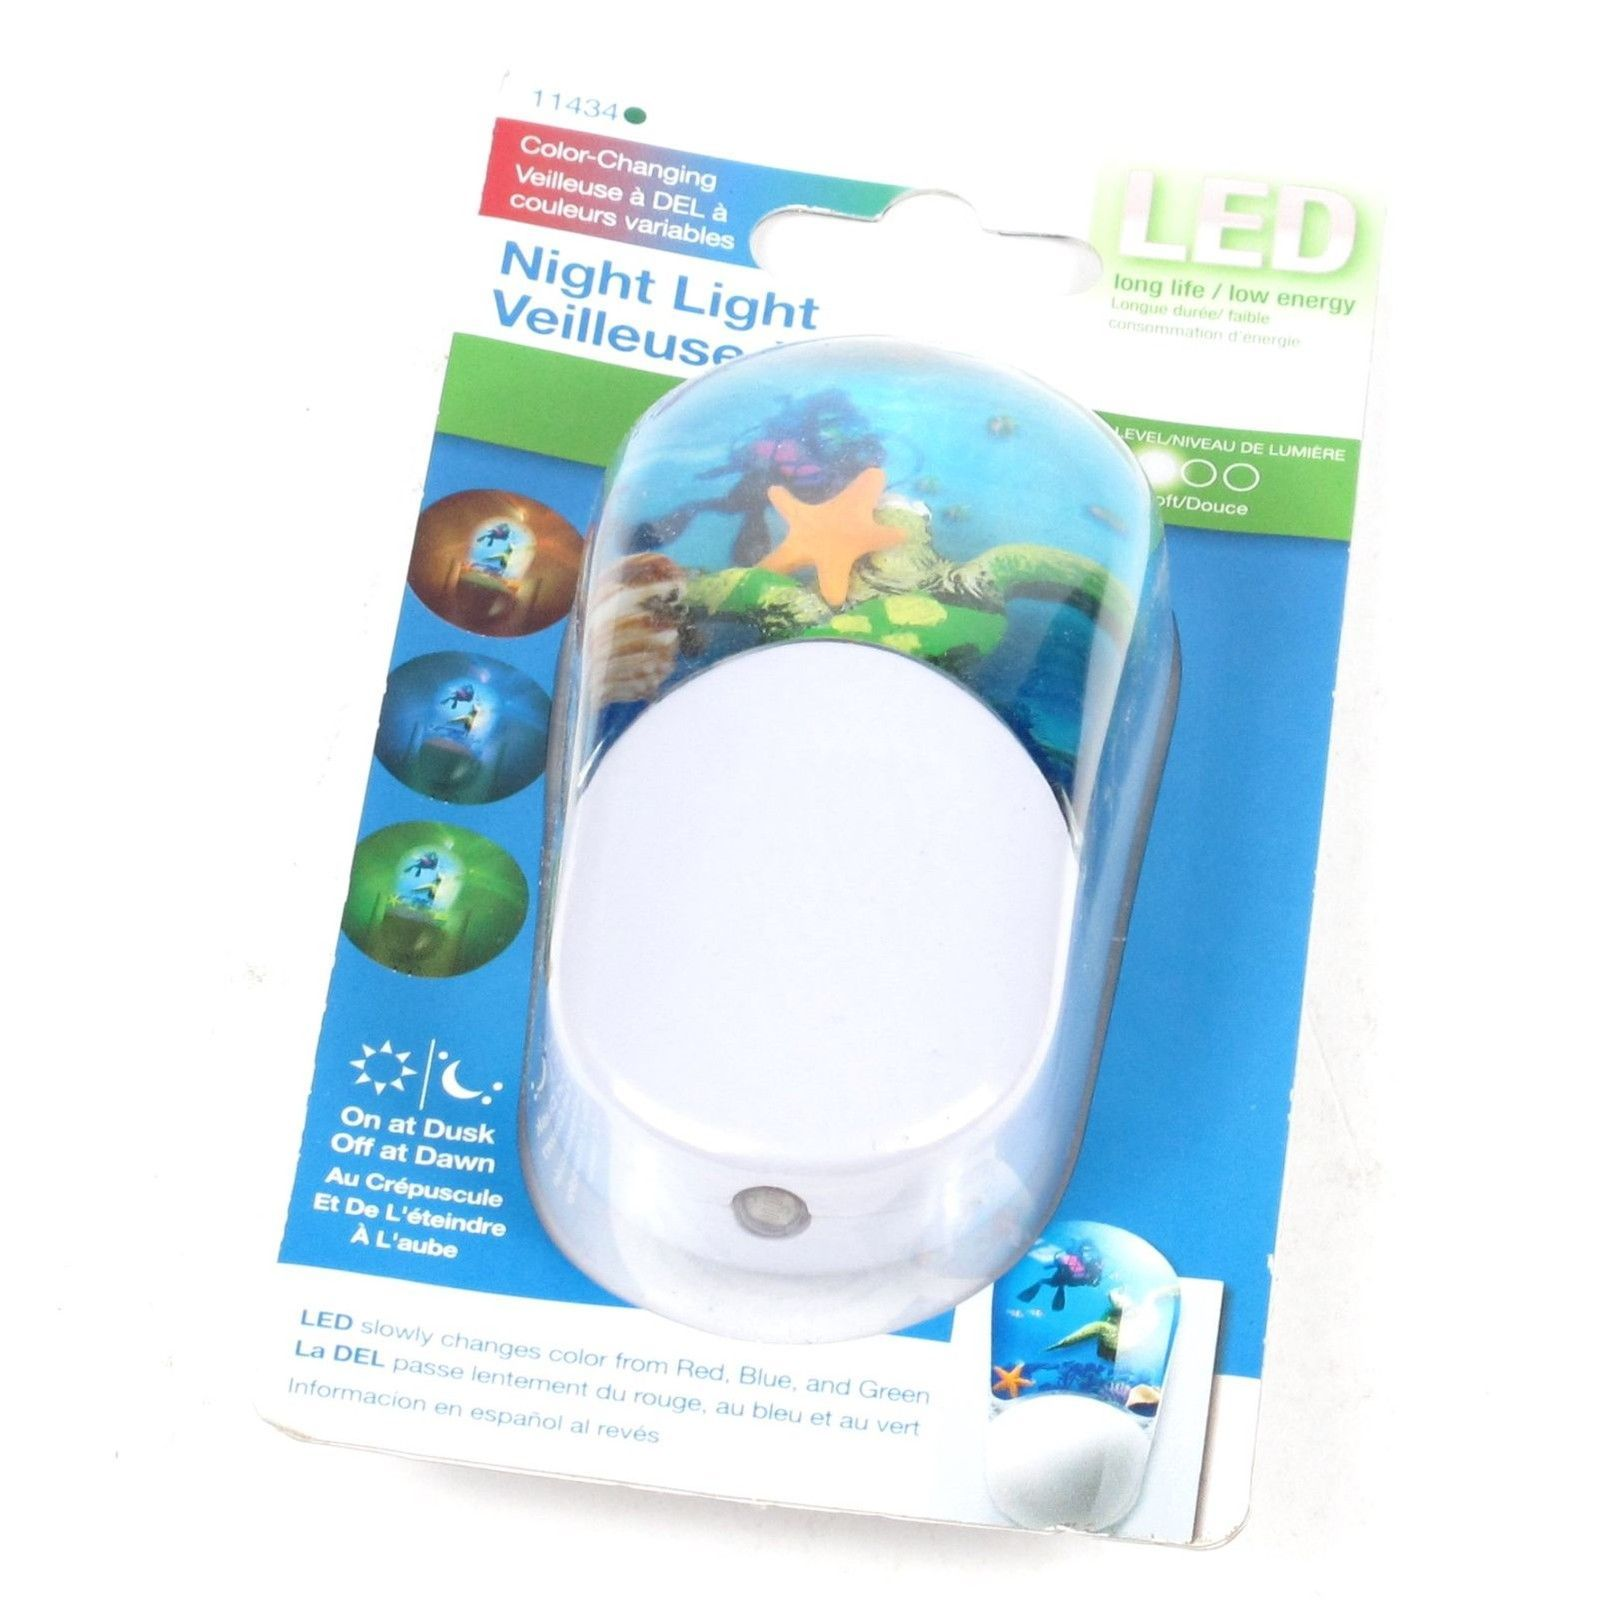 GE Color Changing Deep Sea Automatic LED Night Light 11434 | eBay ...